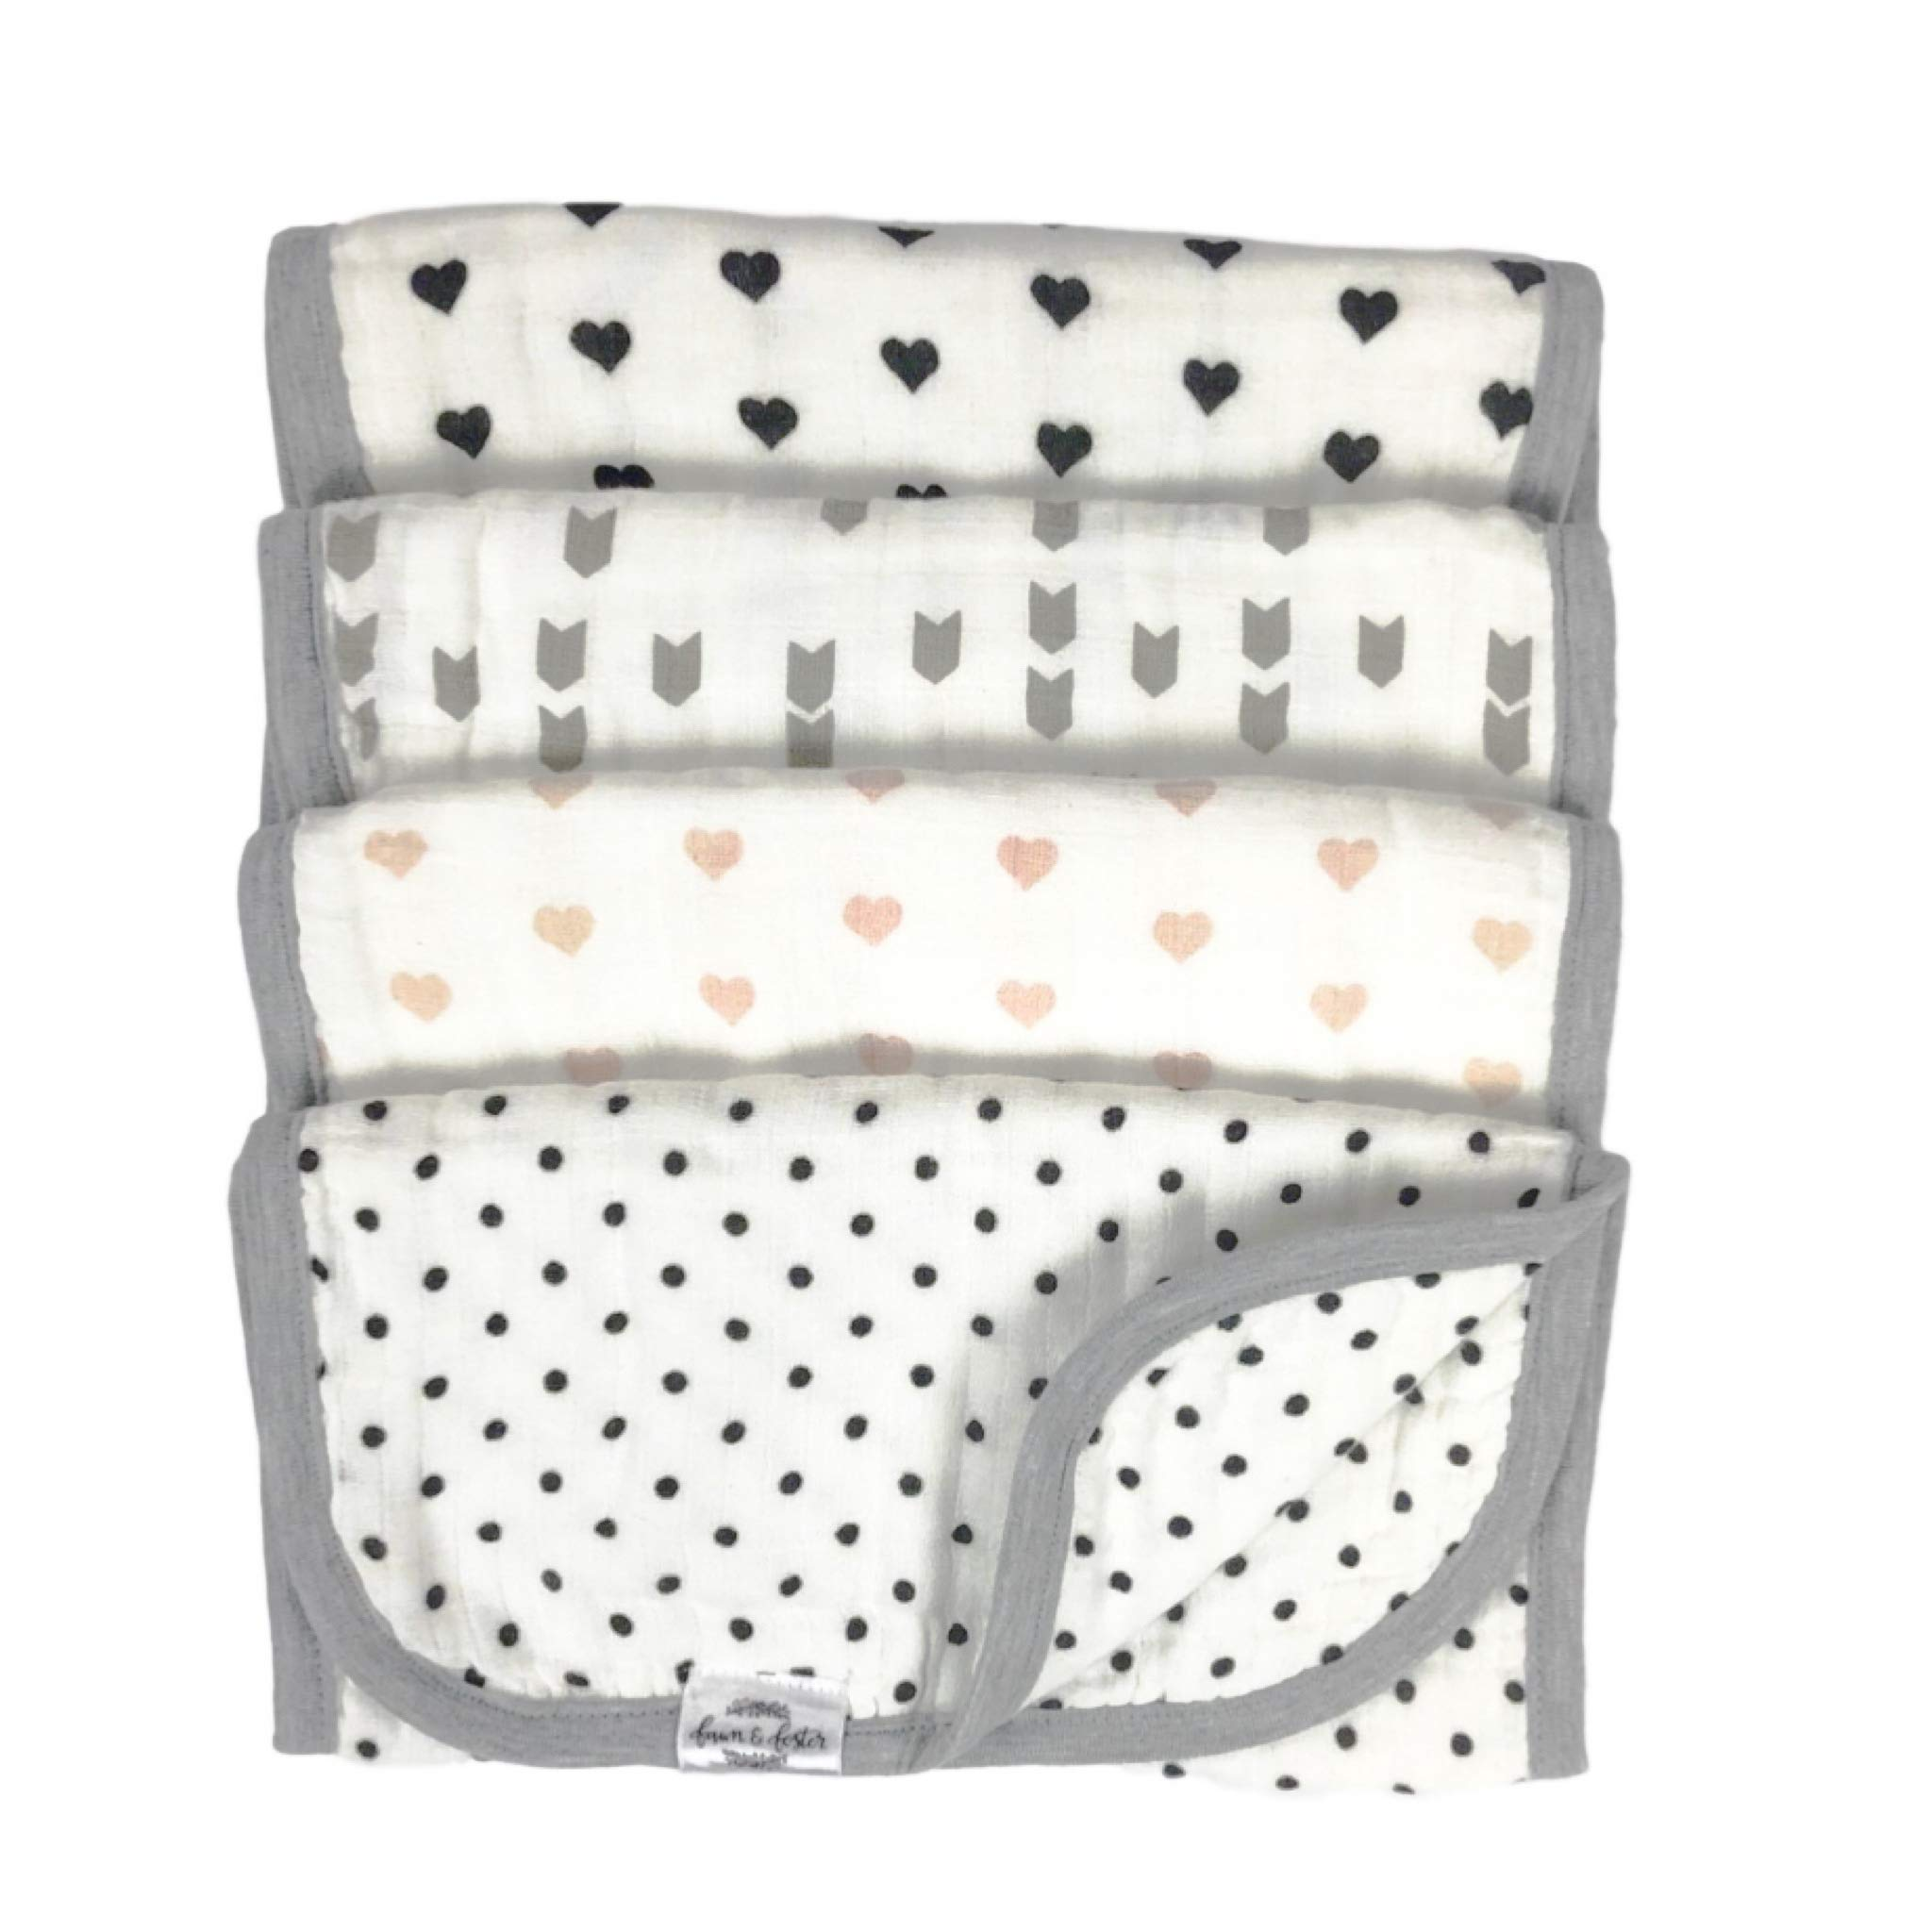 Fawn & Foster 100% Cotton 4-Pack Baby Burp Cloth Quadruple Layer Ultra Soft and Absorbent Dual-Sided Print (Hazel) by Fawn and Foster